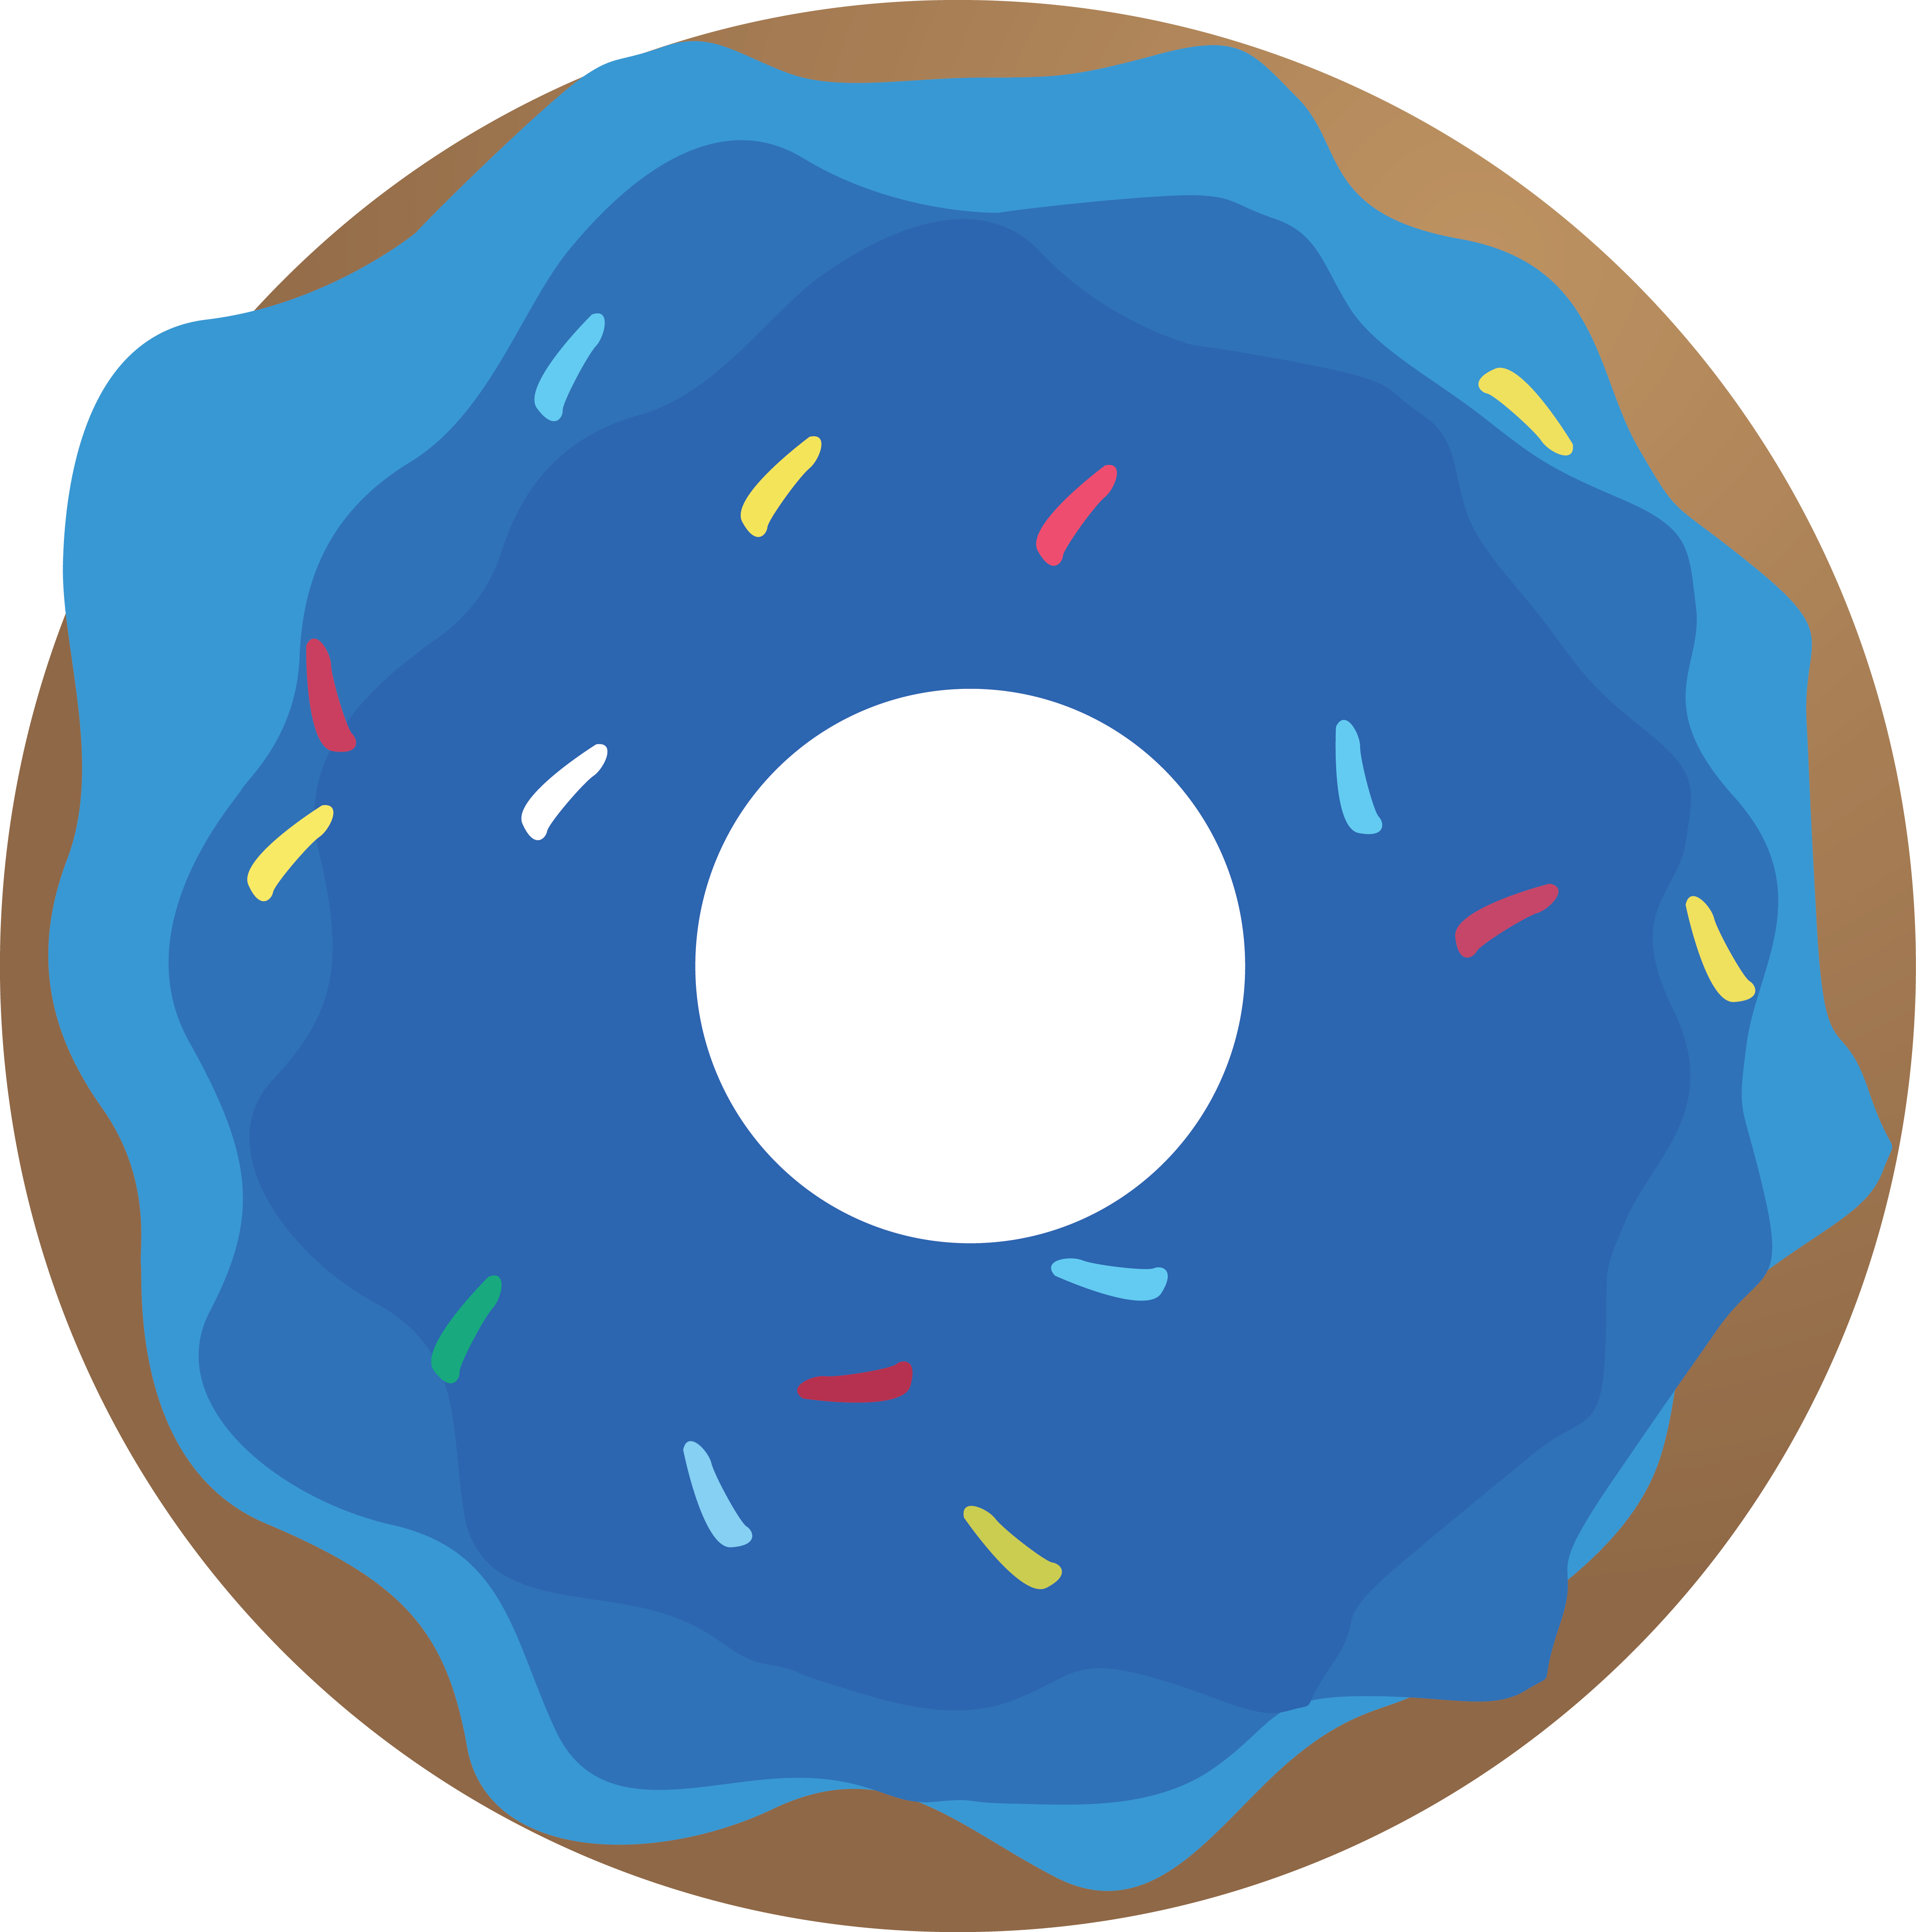 Doughnut Clipart | Free download on ClipArtMag (4405 x 4442 Pixel)